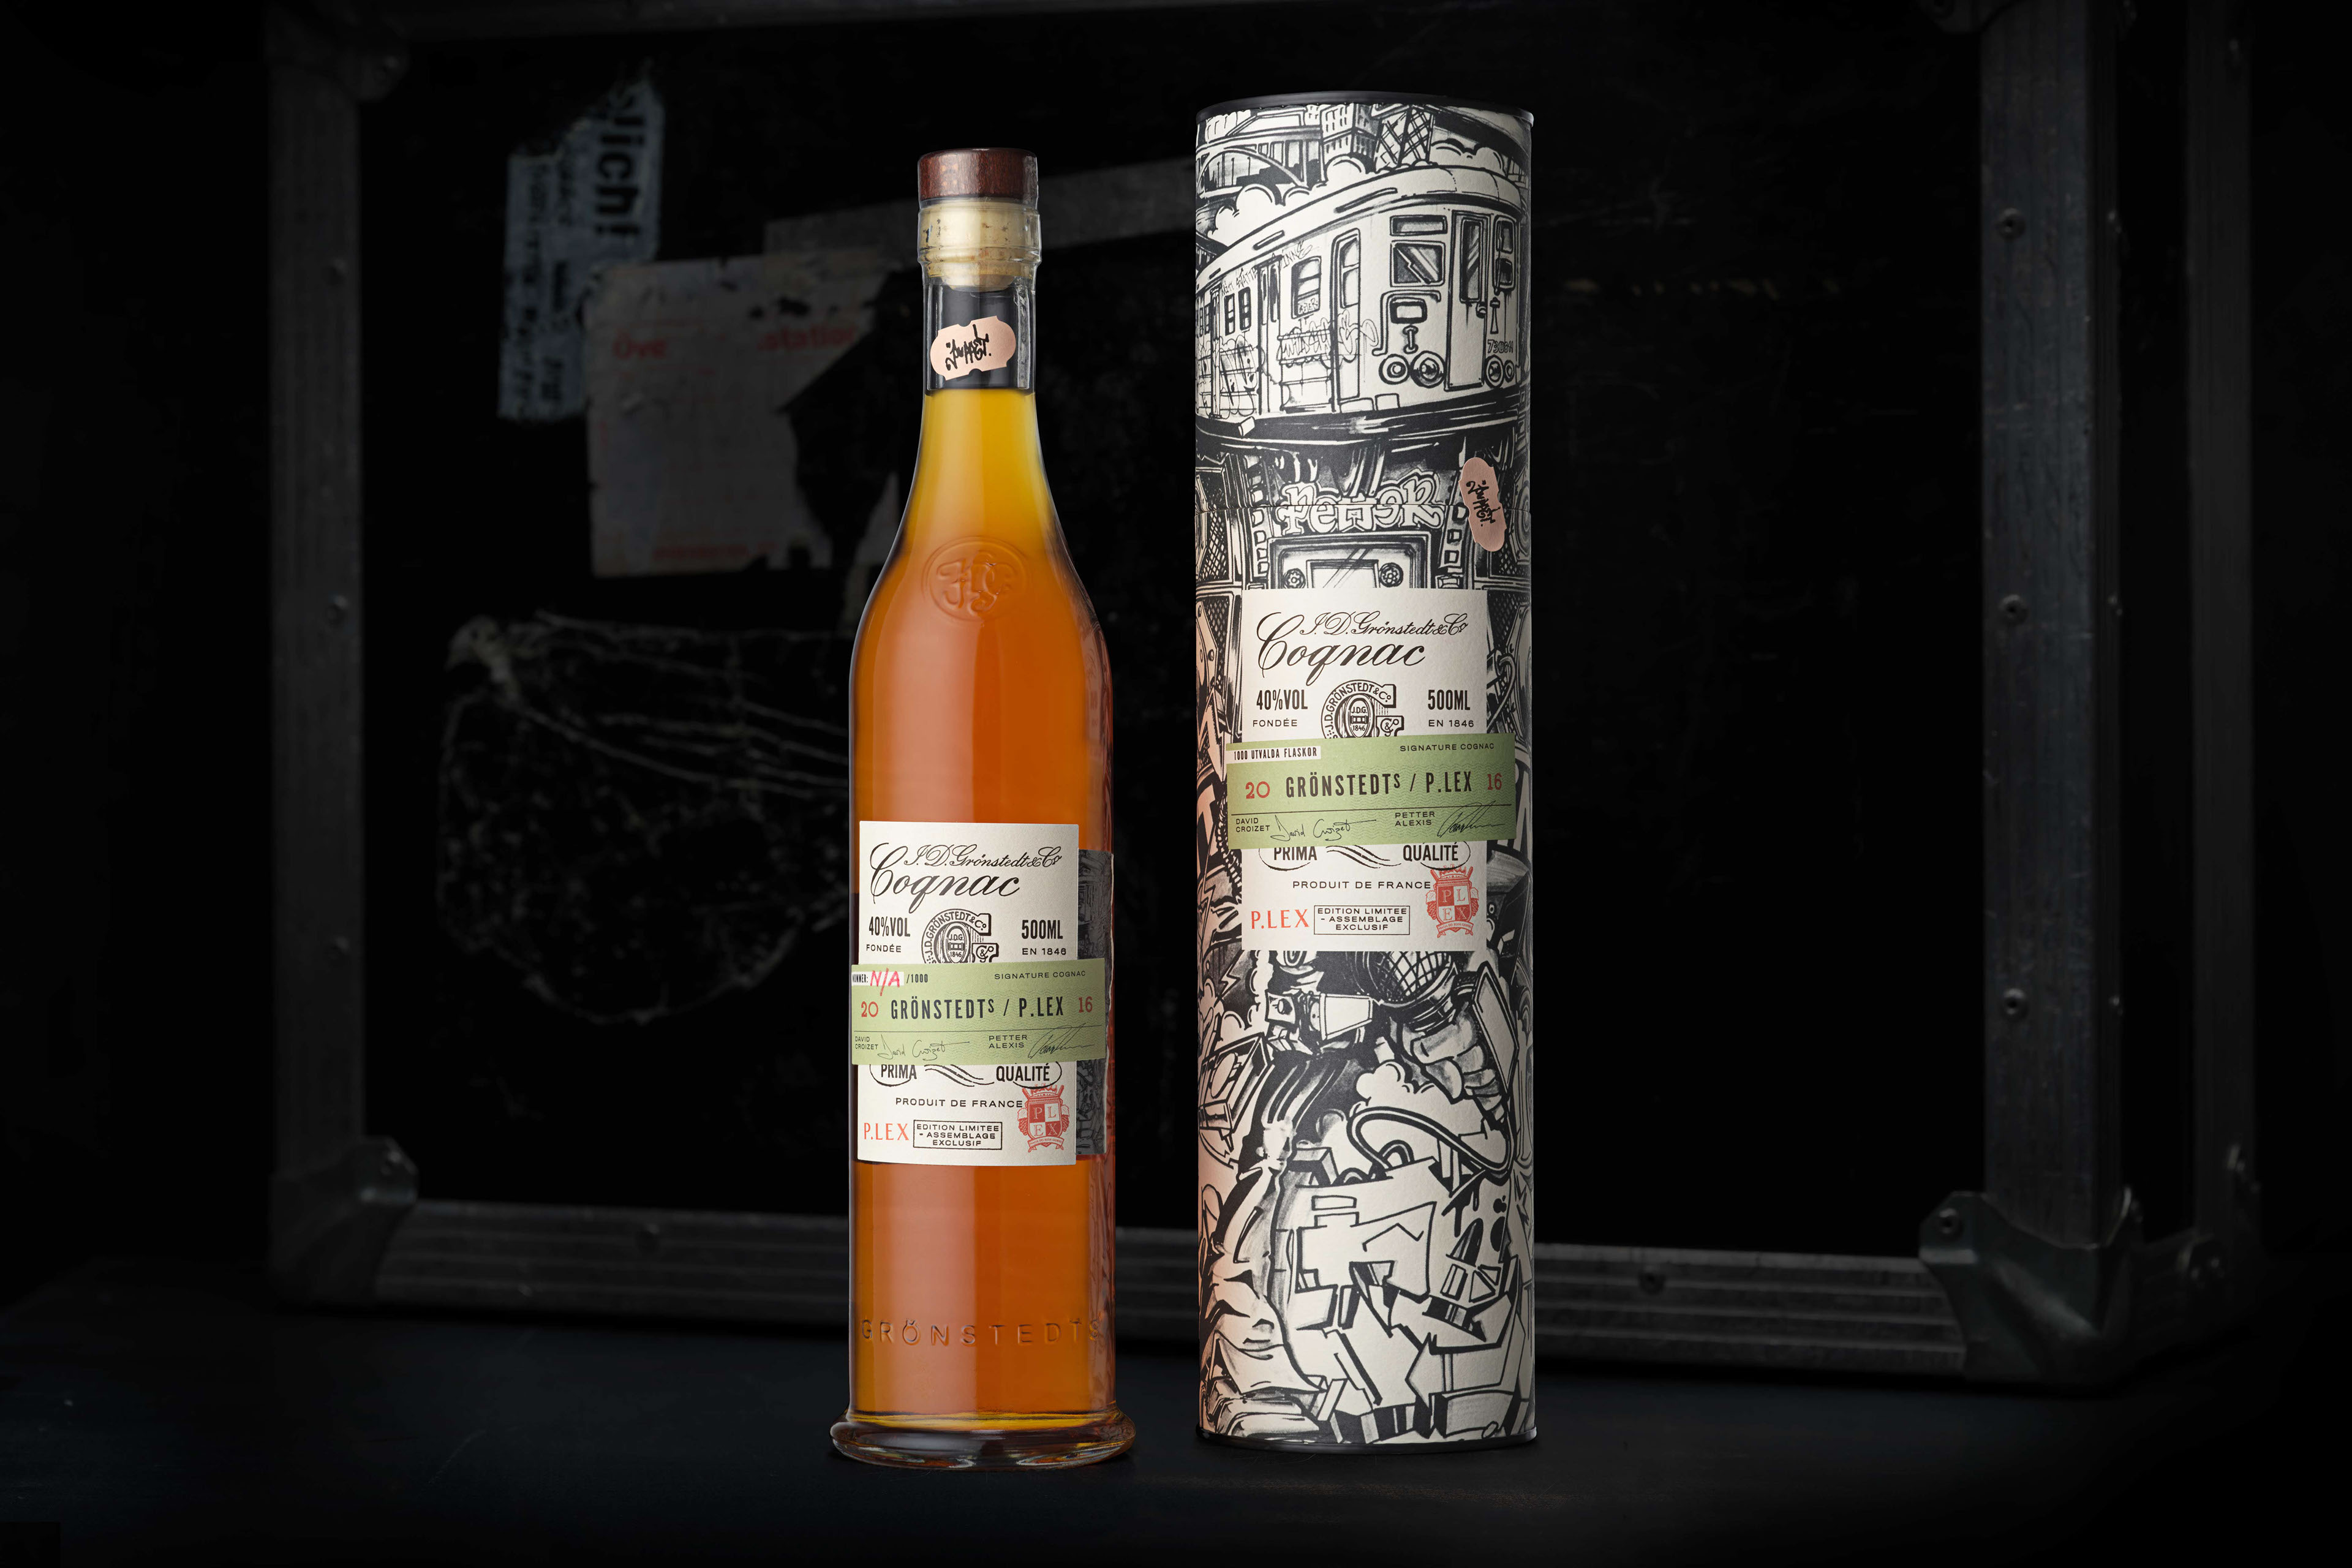 The rocket pizza food truck grits grids - Gronstedt S Cognac Spirits Branding Packaging